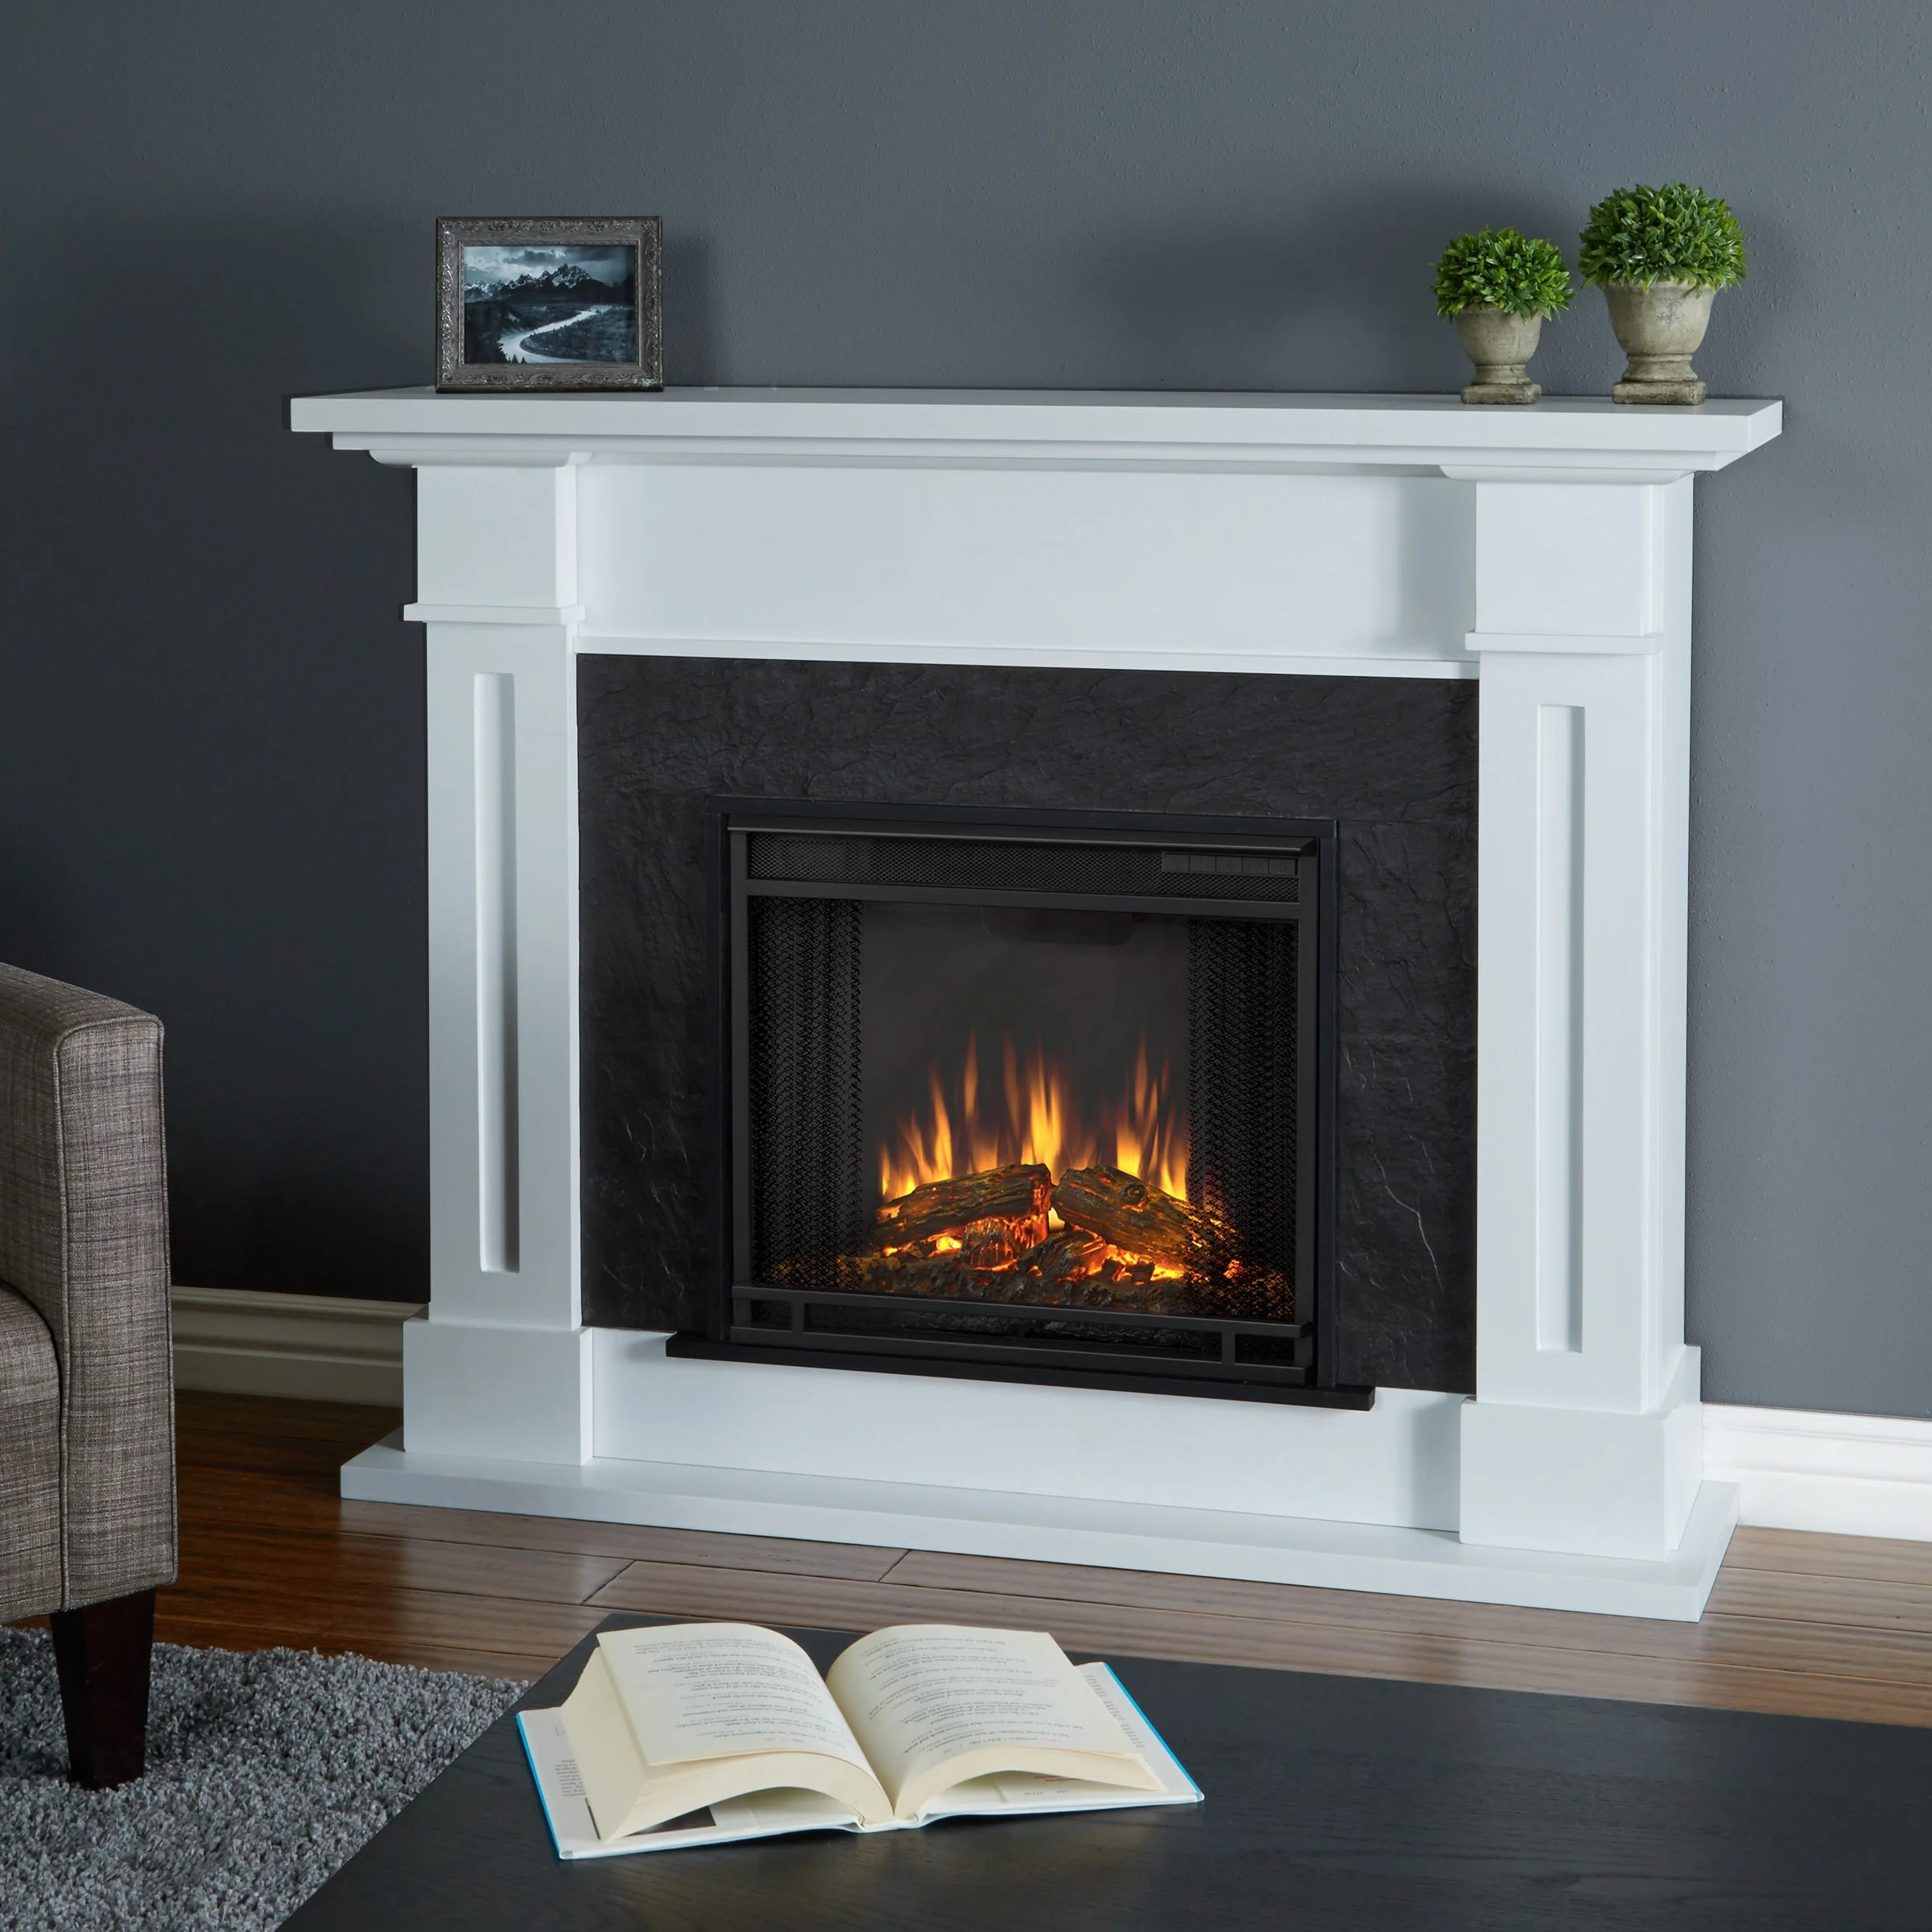 Gas Vs Electric Fireplace Pros And Cons Kipling Electric Fireplace White By Real Flame